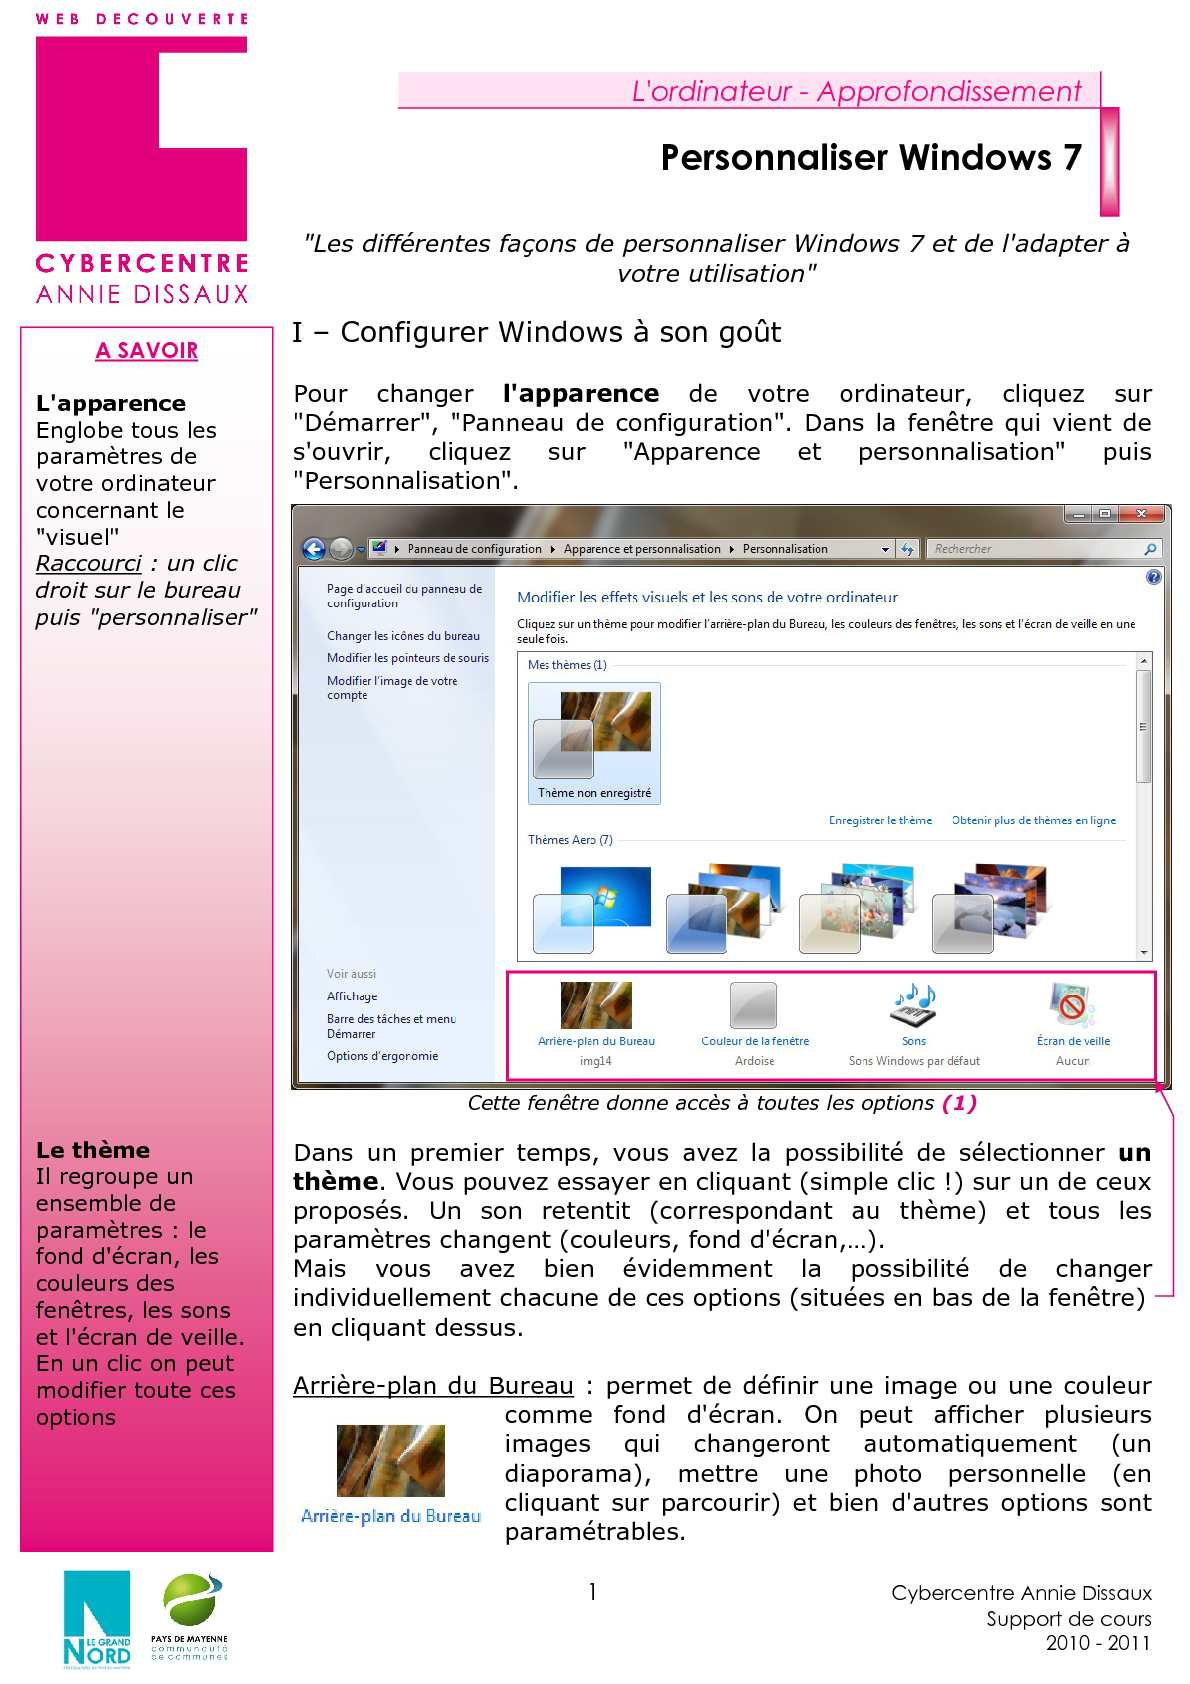 Calam o changer l 39 apparence de windows 7 - Personnaliser son bureau windows 7 ...